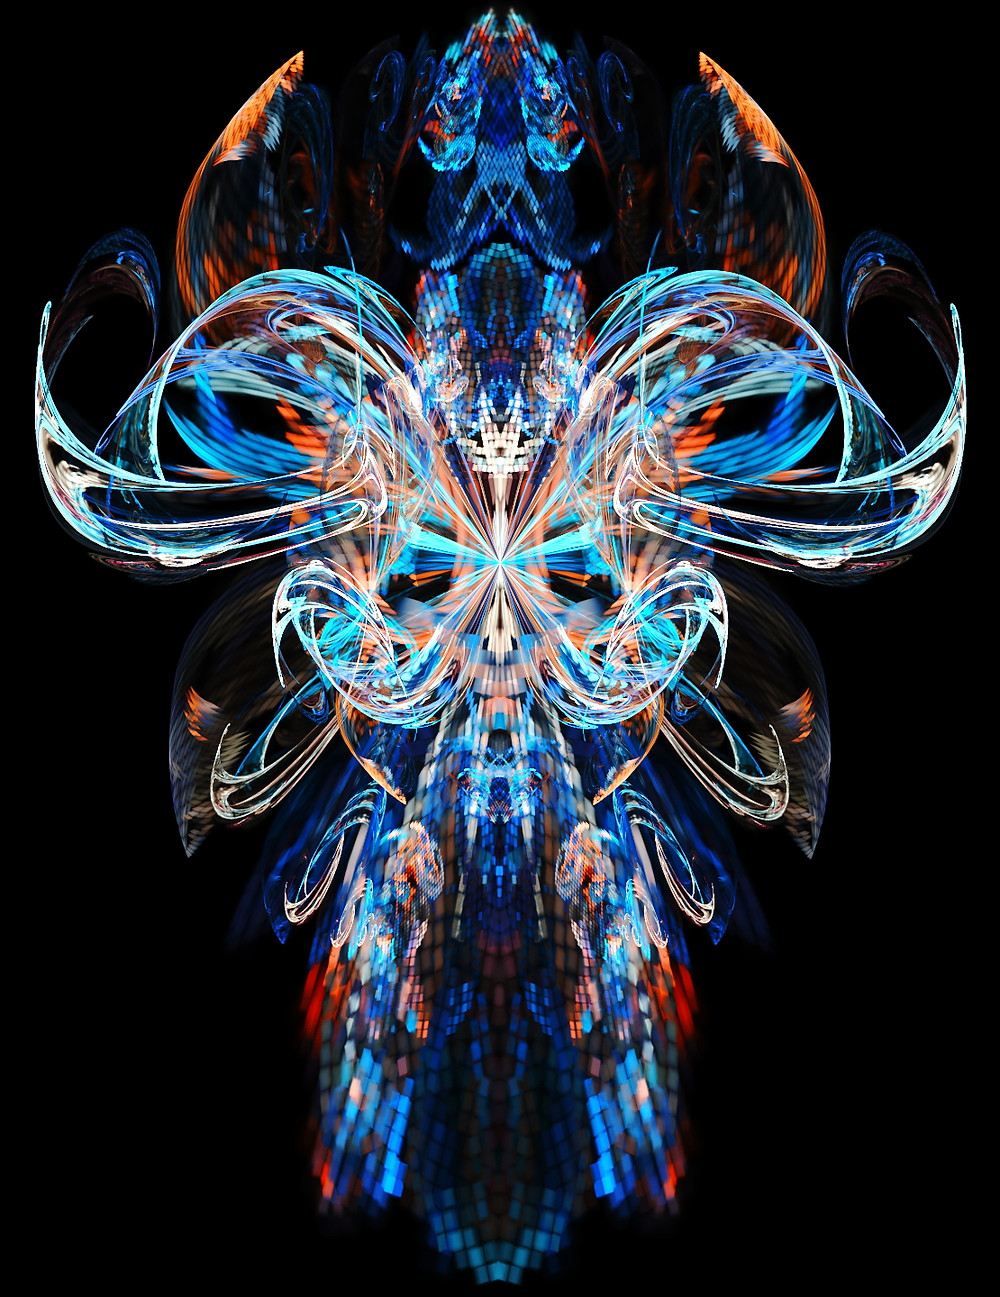 """Chalice"" (Chalice Web.jpg) Fractal, 2019 Fractals are often like clouds, if you ask three people what they see in them, you'll get five different answers back. I find it quite amusing when I've spent hours working on a new design, building up all these ideas about what's in the scene. ""That's a rad chalice,"" I'll think to myself, before taking it to my friends for feedback. They'll gush over the colors and the shapes, then tell me what a nice flower, or mask, or angel I've created. It's almost like when I share my art with them, they share a little bit of it back with me, and I just love that."